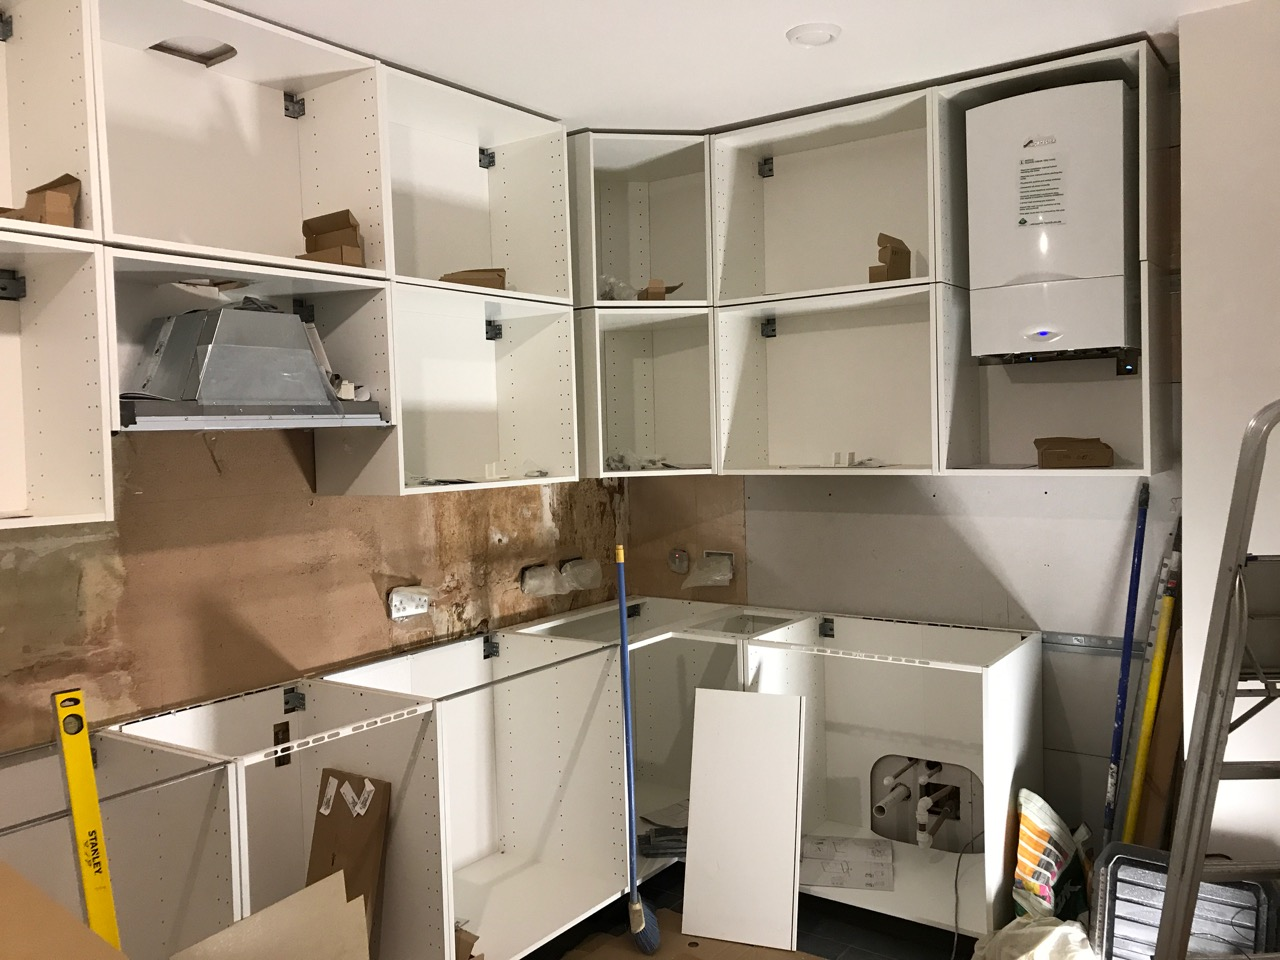 All units fitted in a kitchen, without doors